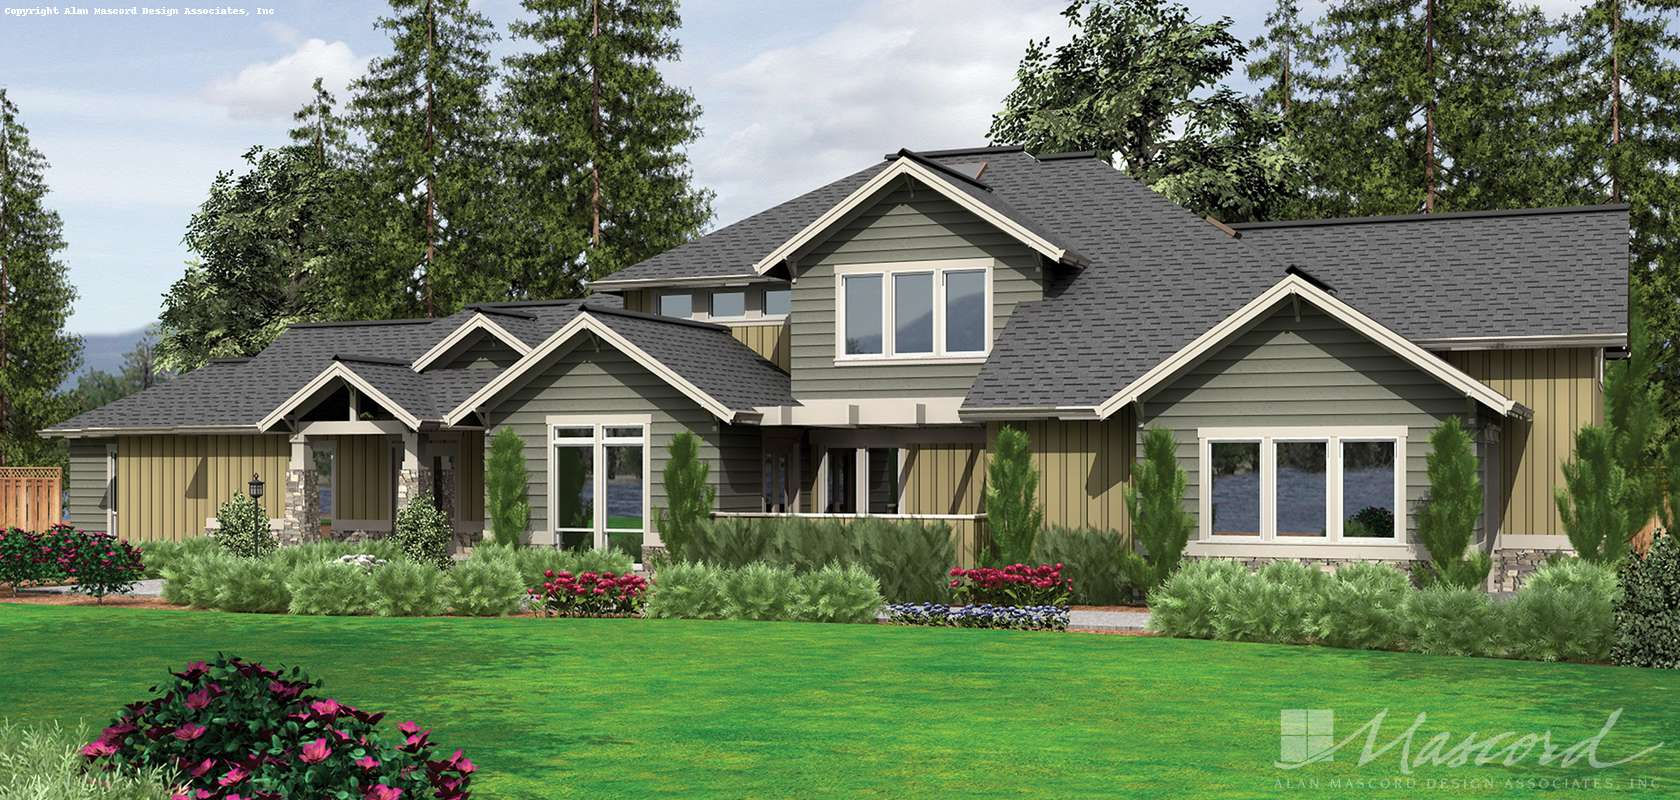 Mascord House Plan 2444: The Breckenridge